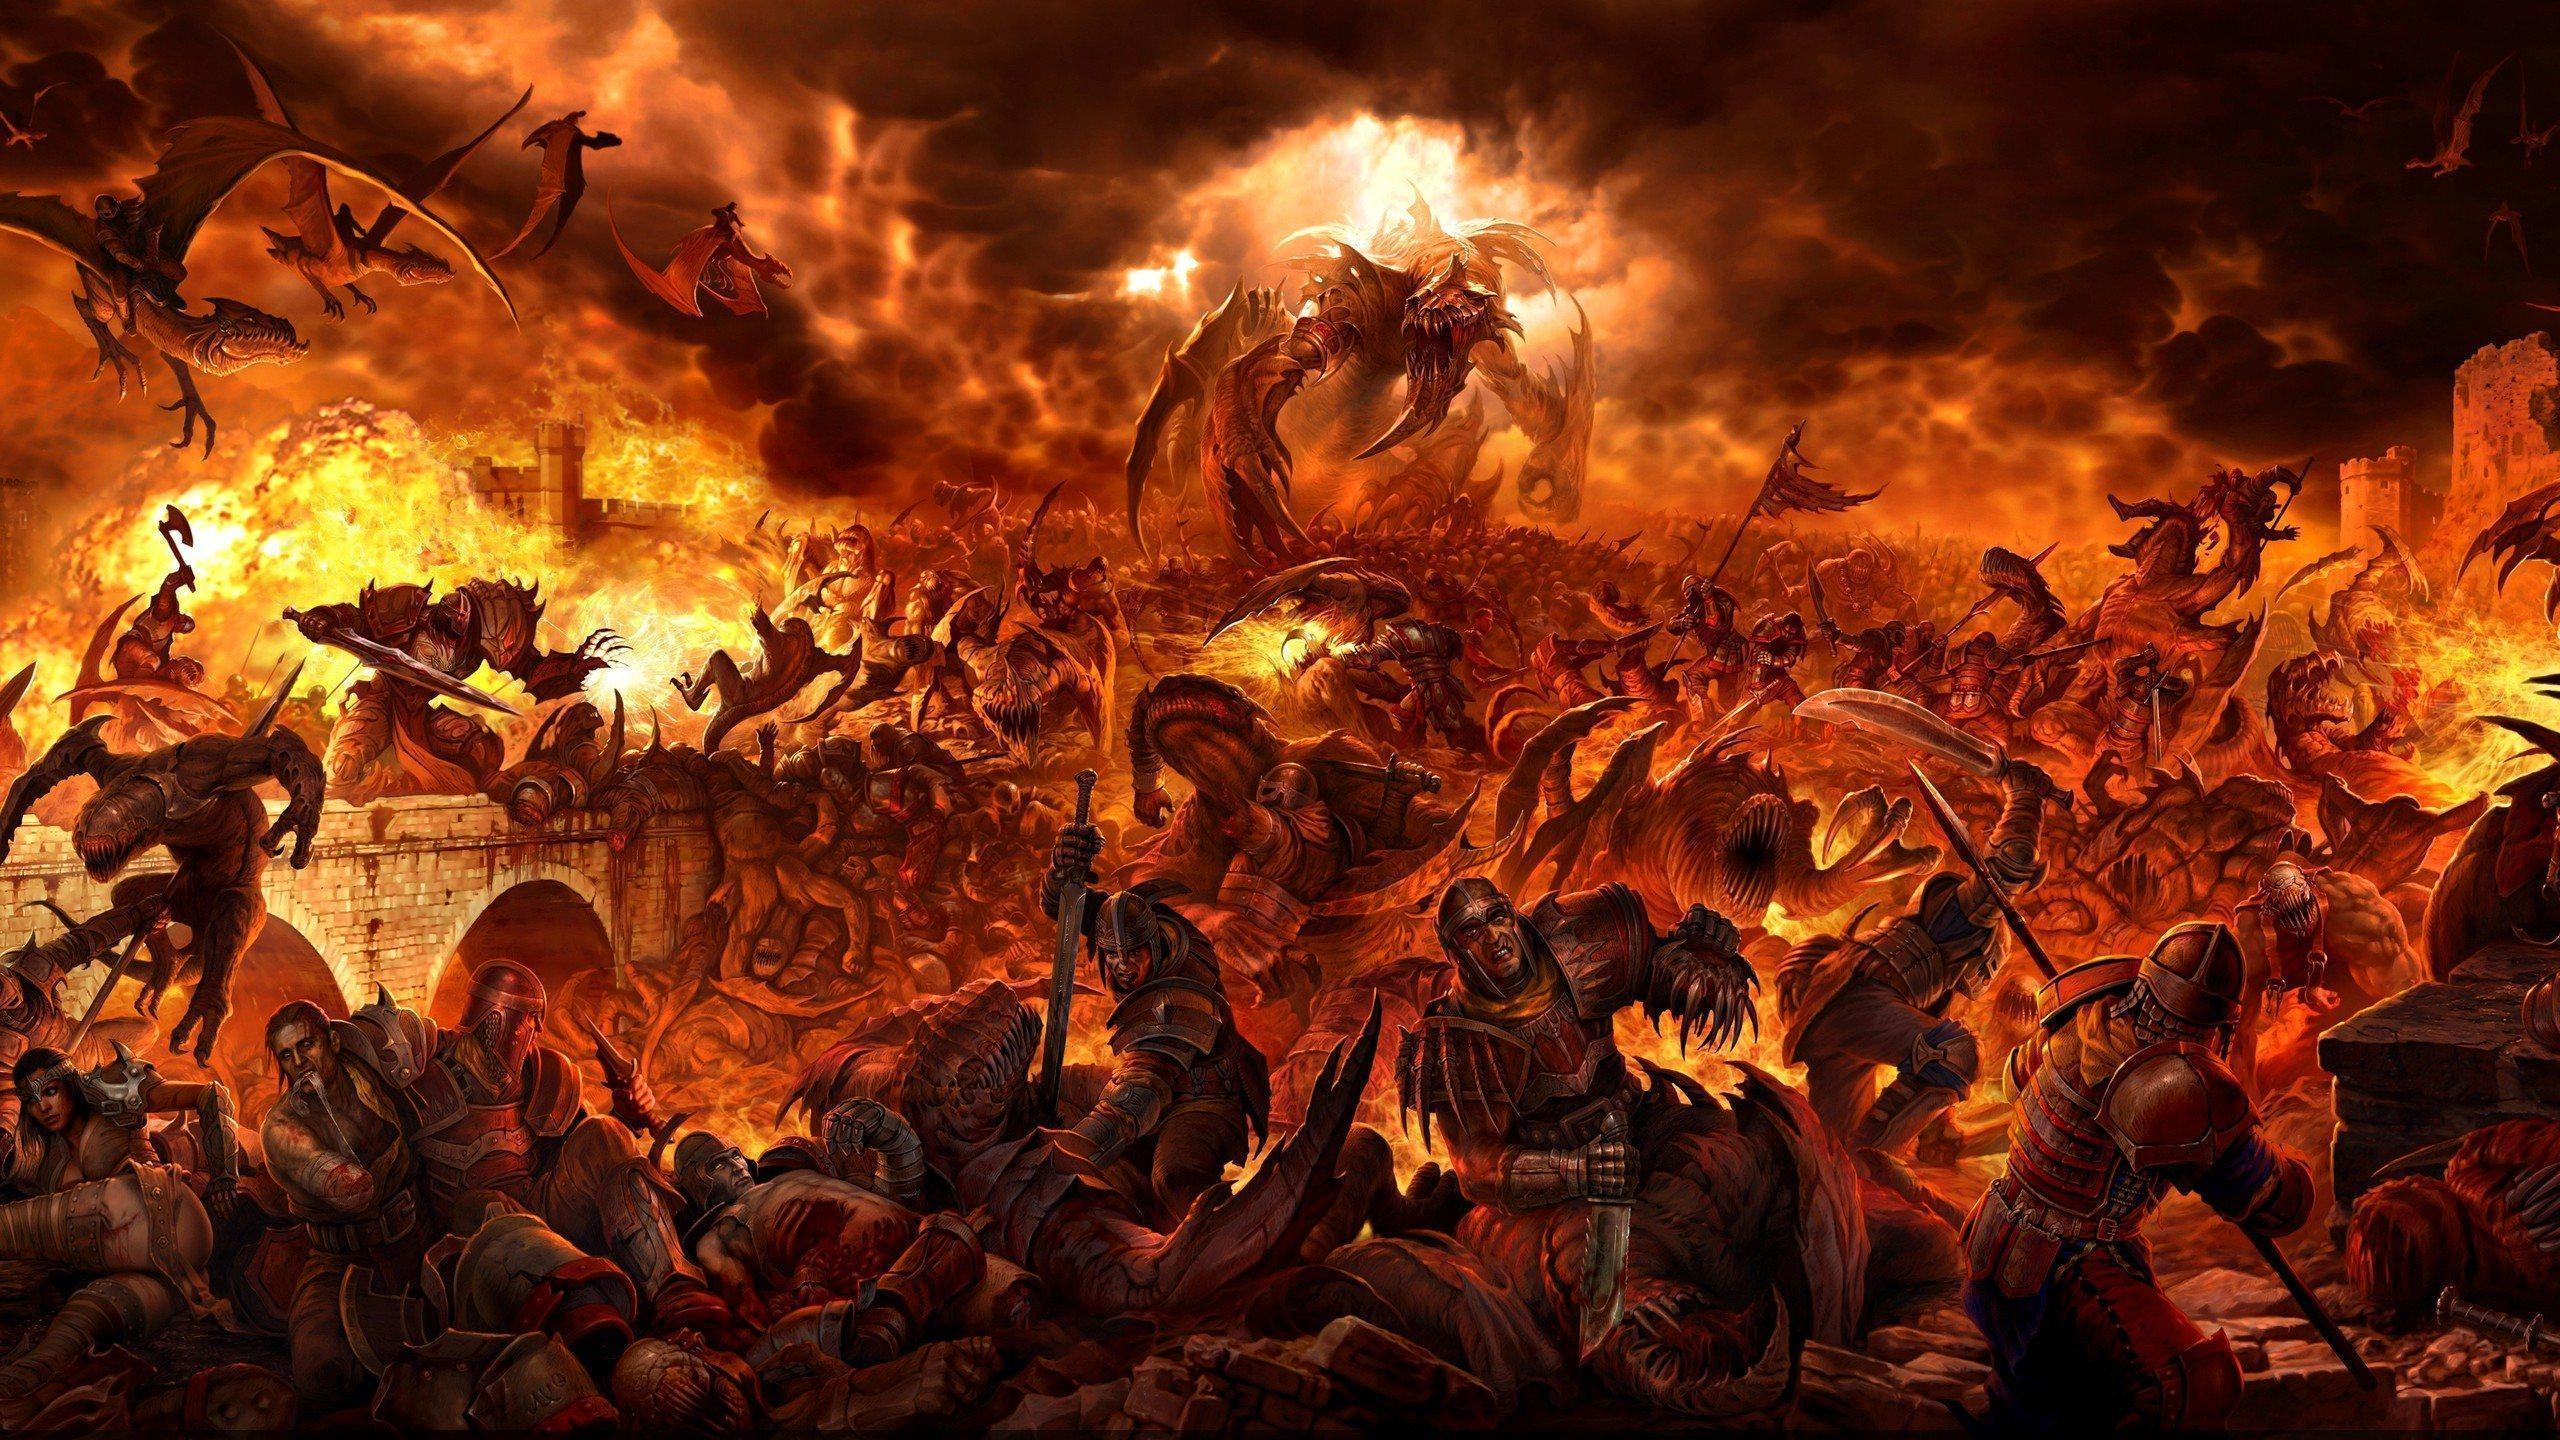 Heaven and <b>Hell HD Wallpaper</b> - WallpaperSafari